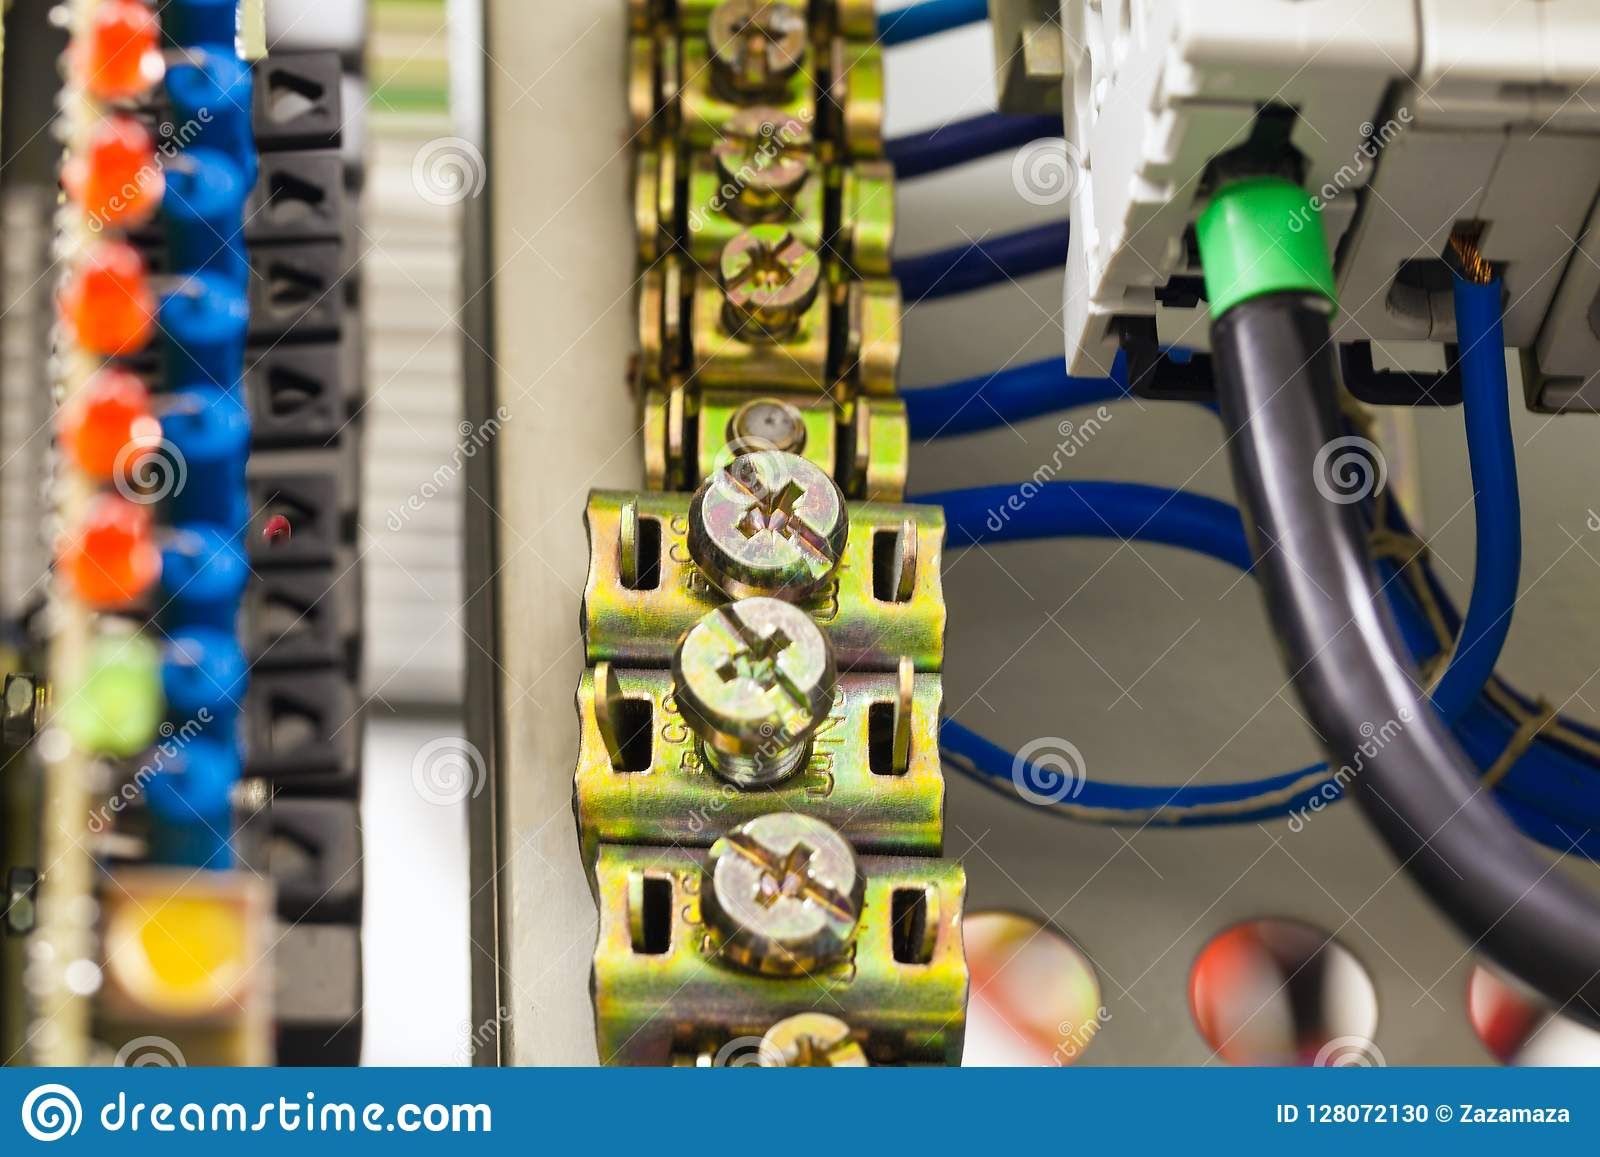 Close-up image of electrical wires is connected to cuprum clamps in power system of direct voltage with electrical